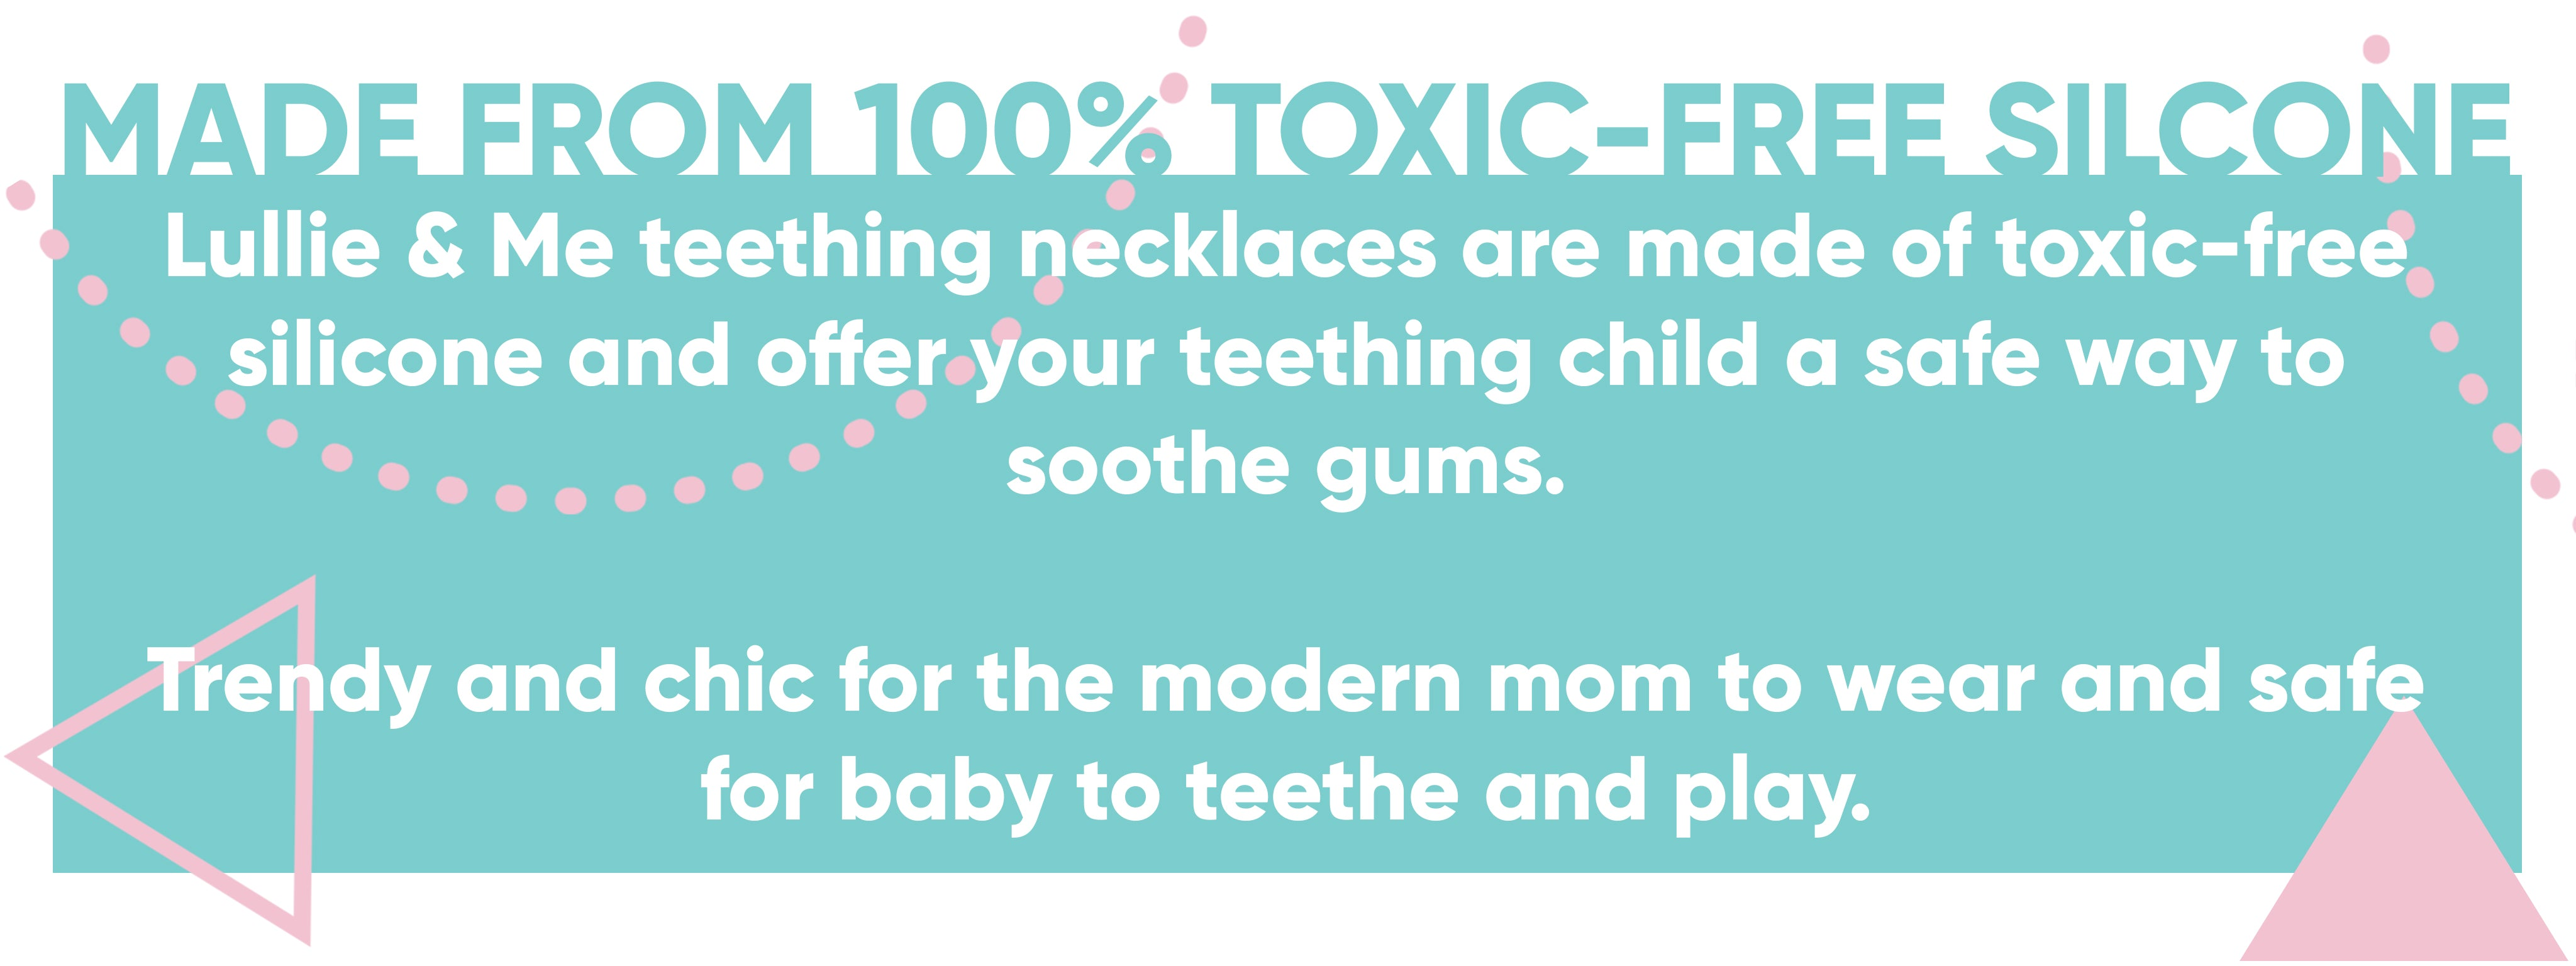 Trendy and Chic Teething necklaces for the modern mom to wear and safe for baby to teethe and play